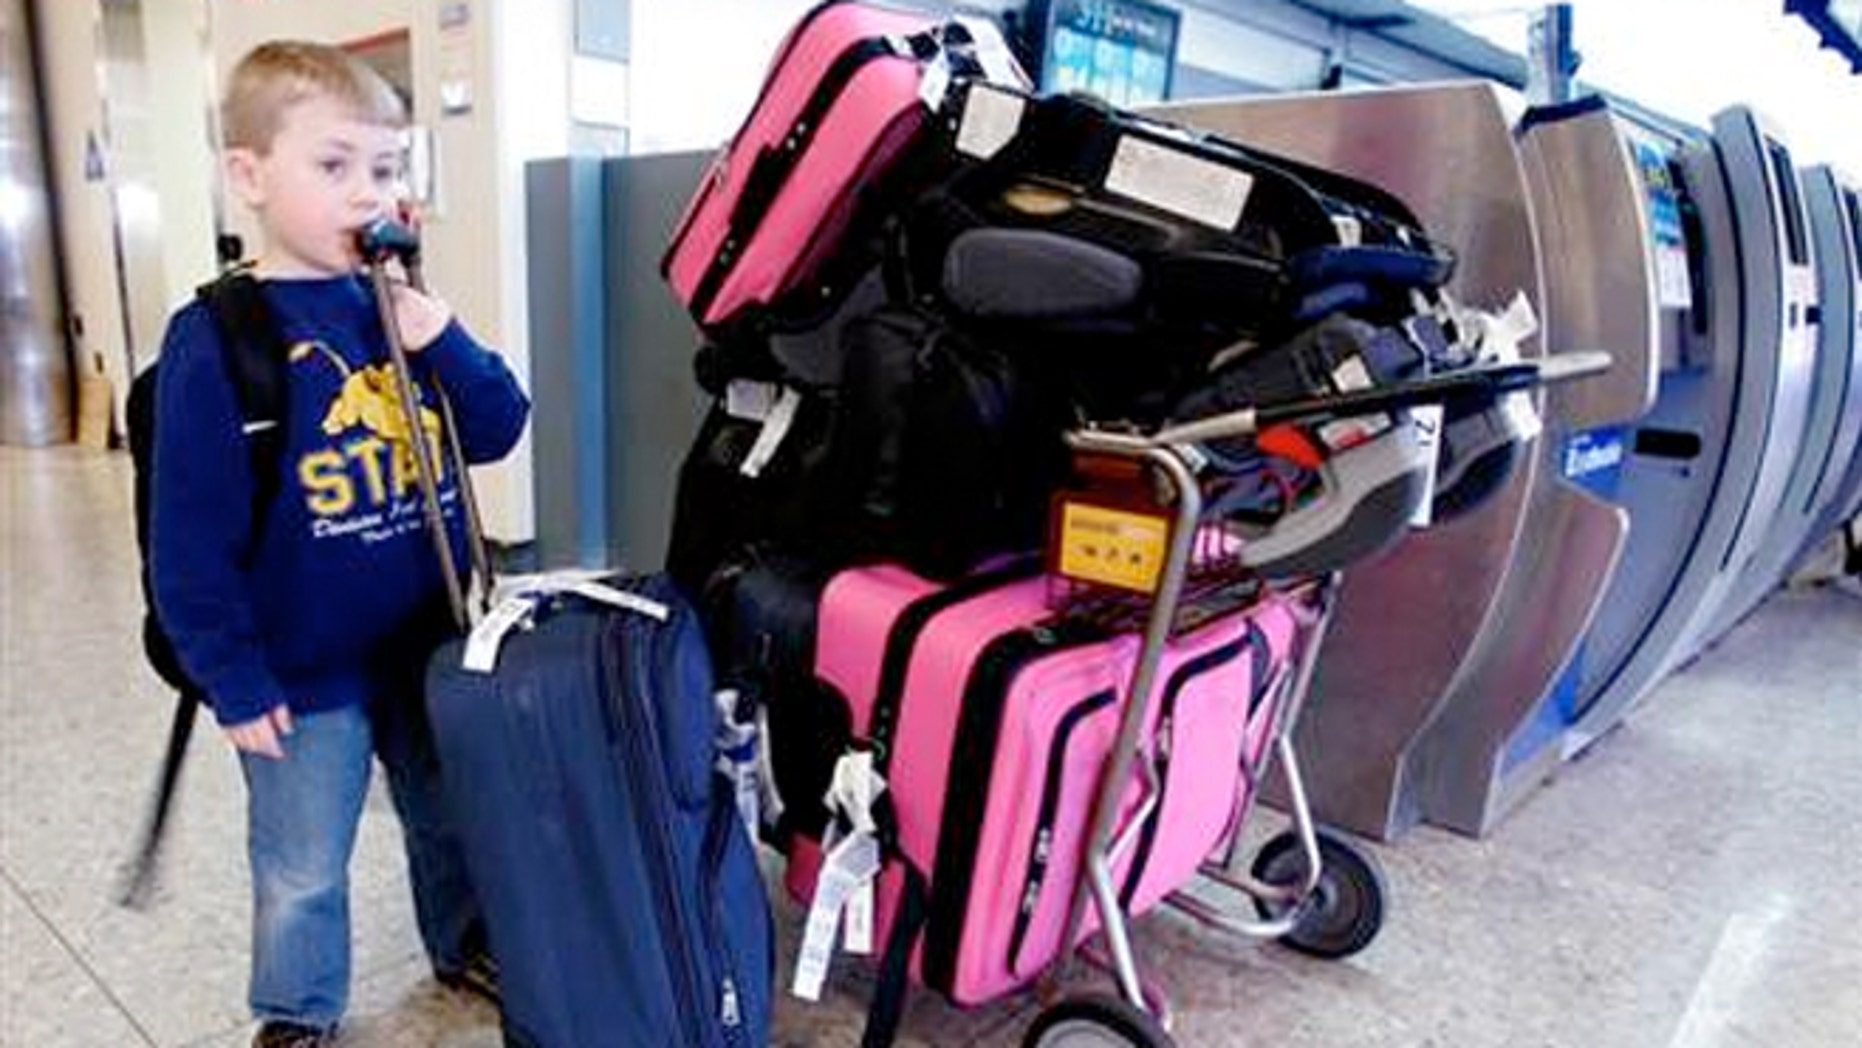 Zachary Cunningham, 5, waits after his family's ATA Arilines flight for his two week vacation to Hawaii.